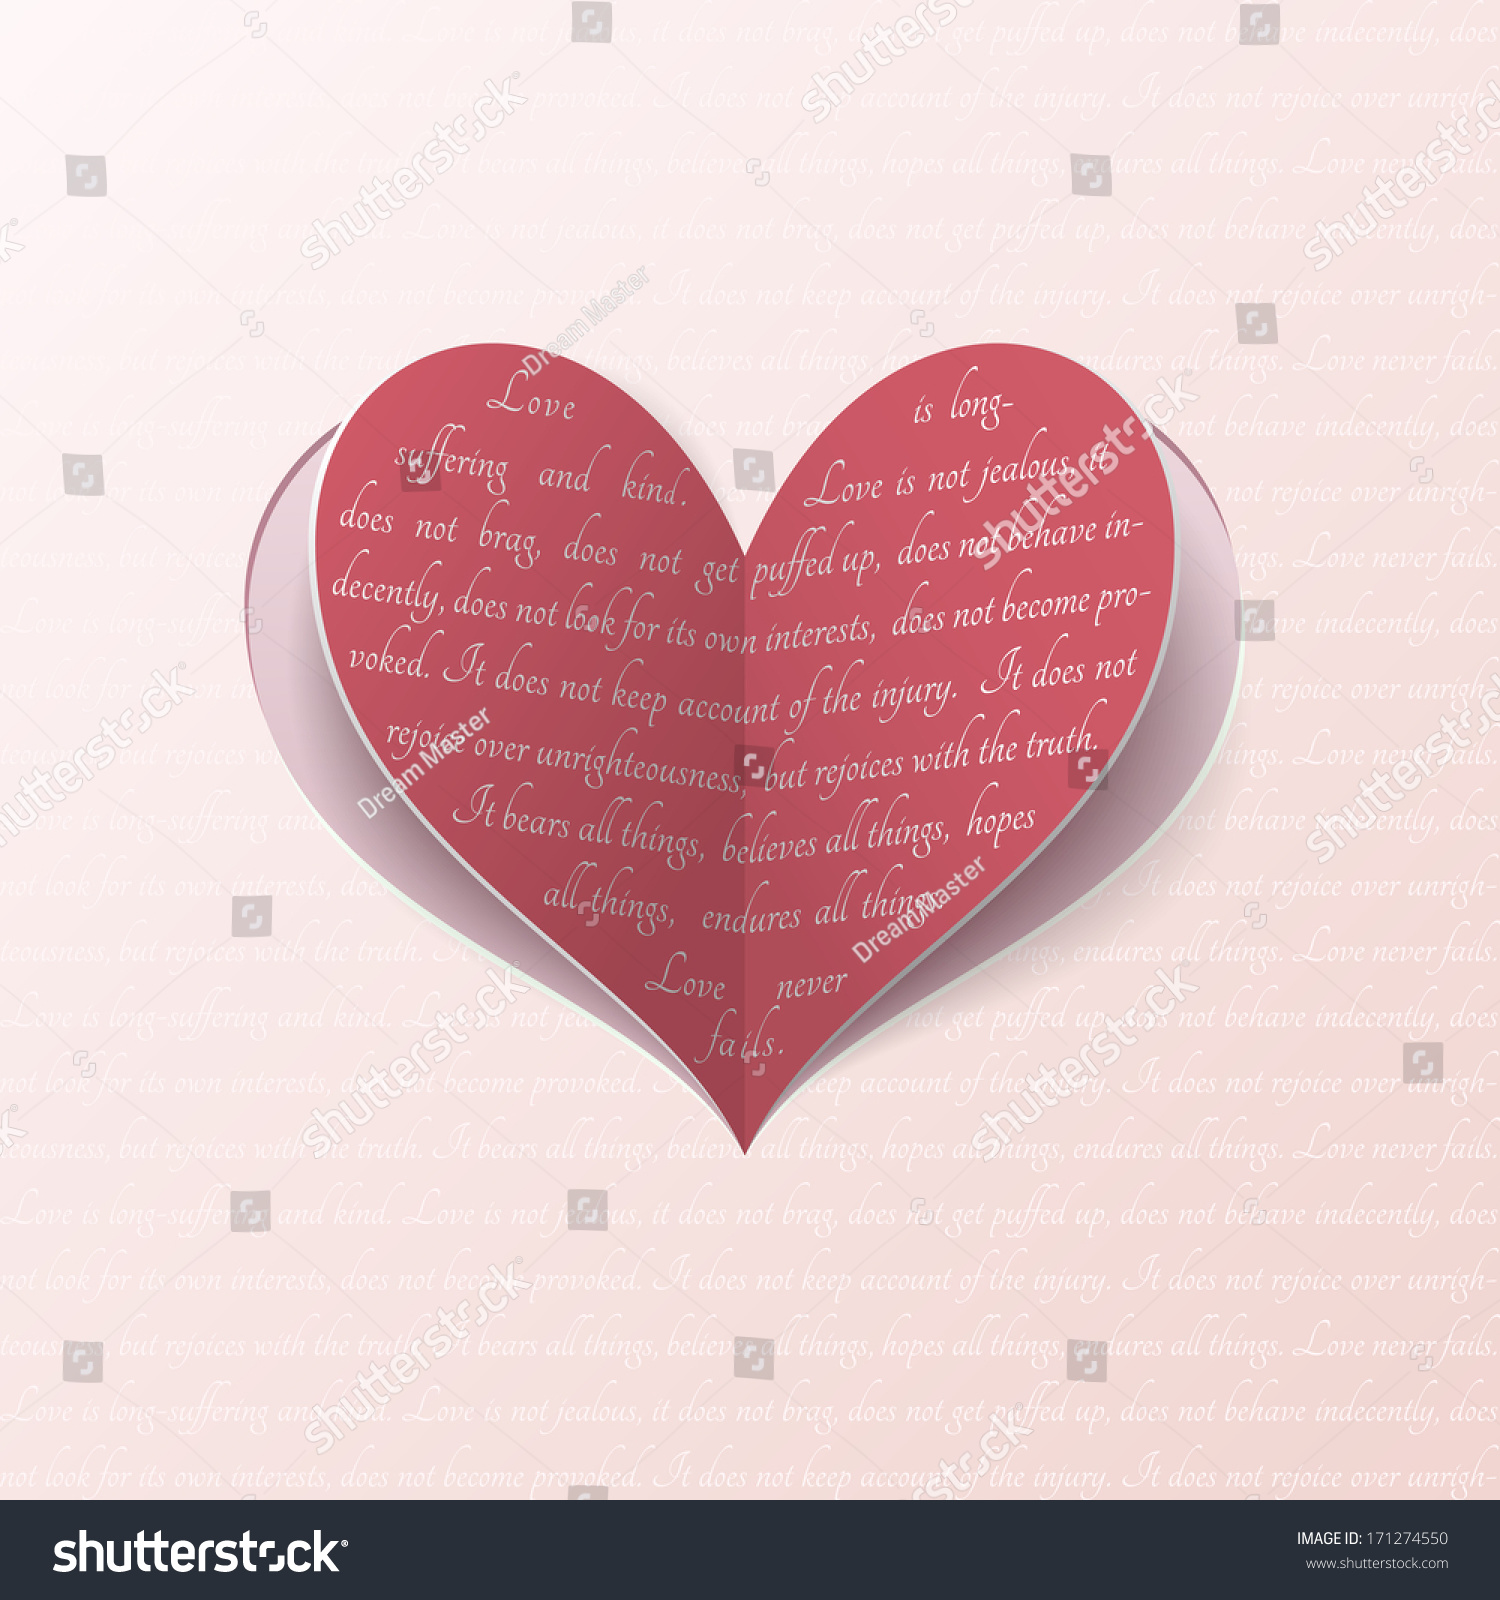 Cutout Paper Heart Quote Bible About Stock Illustration 171274550 ...